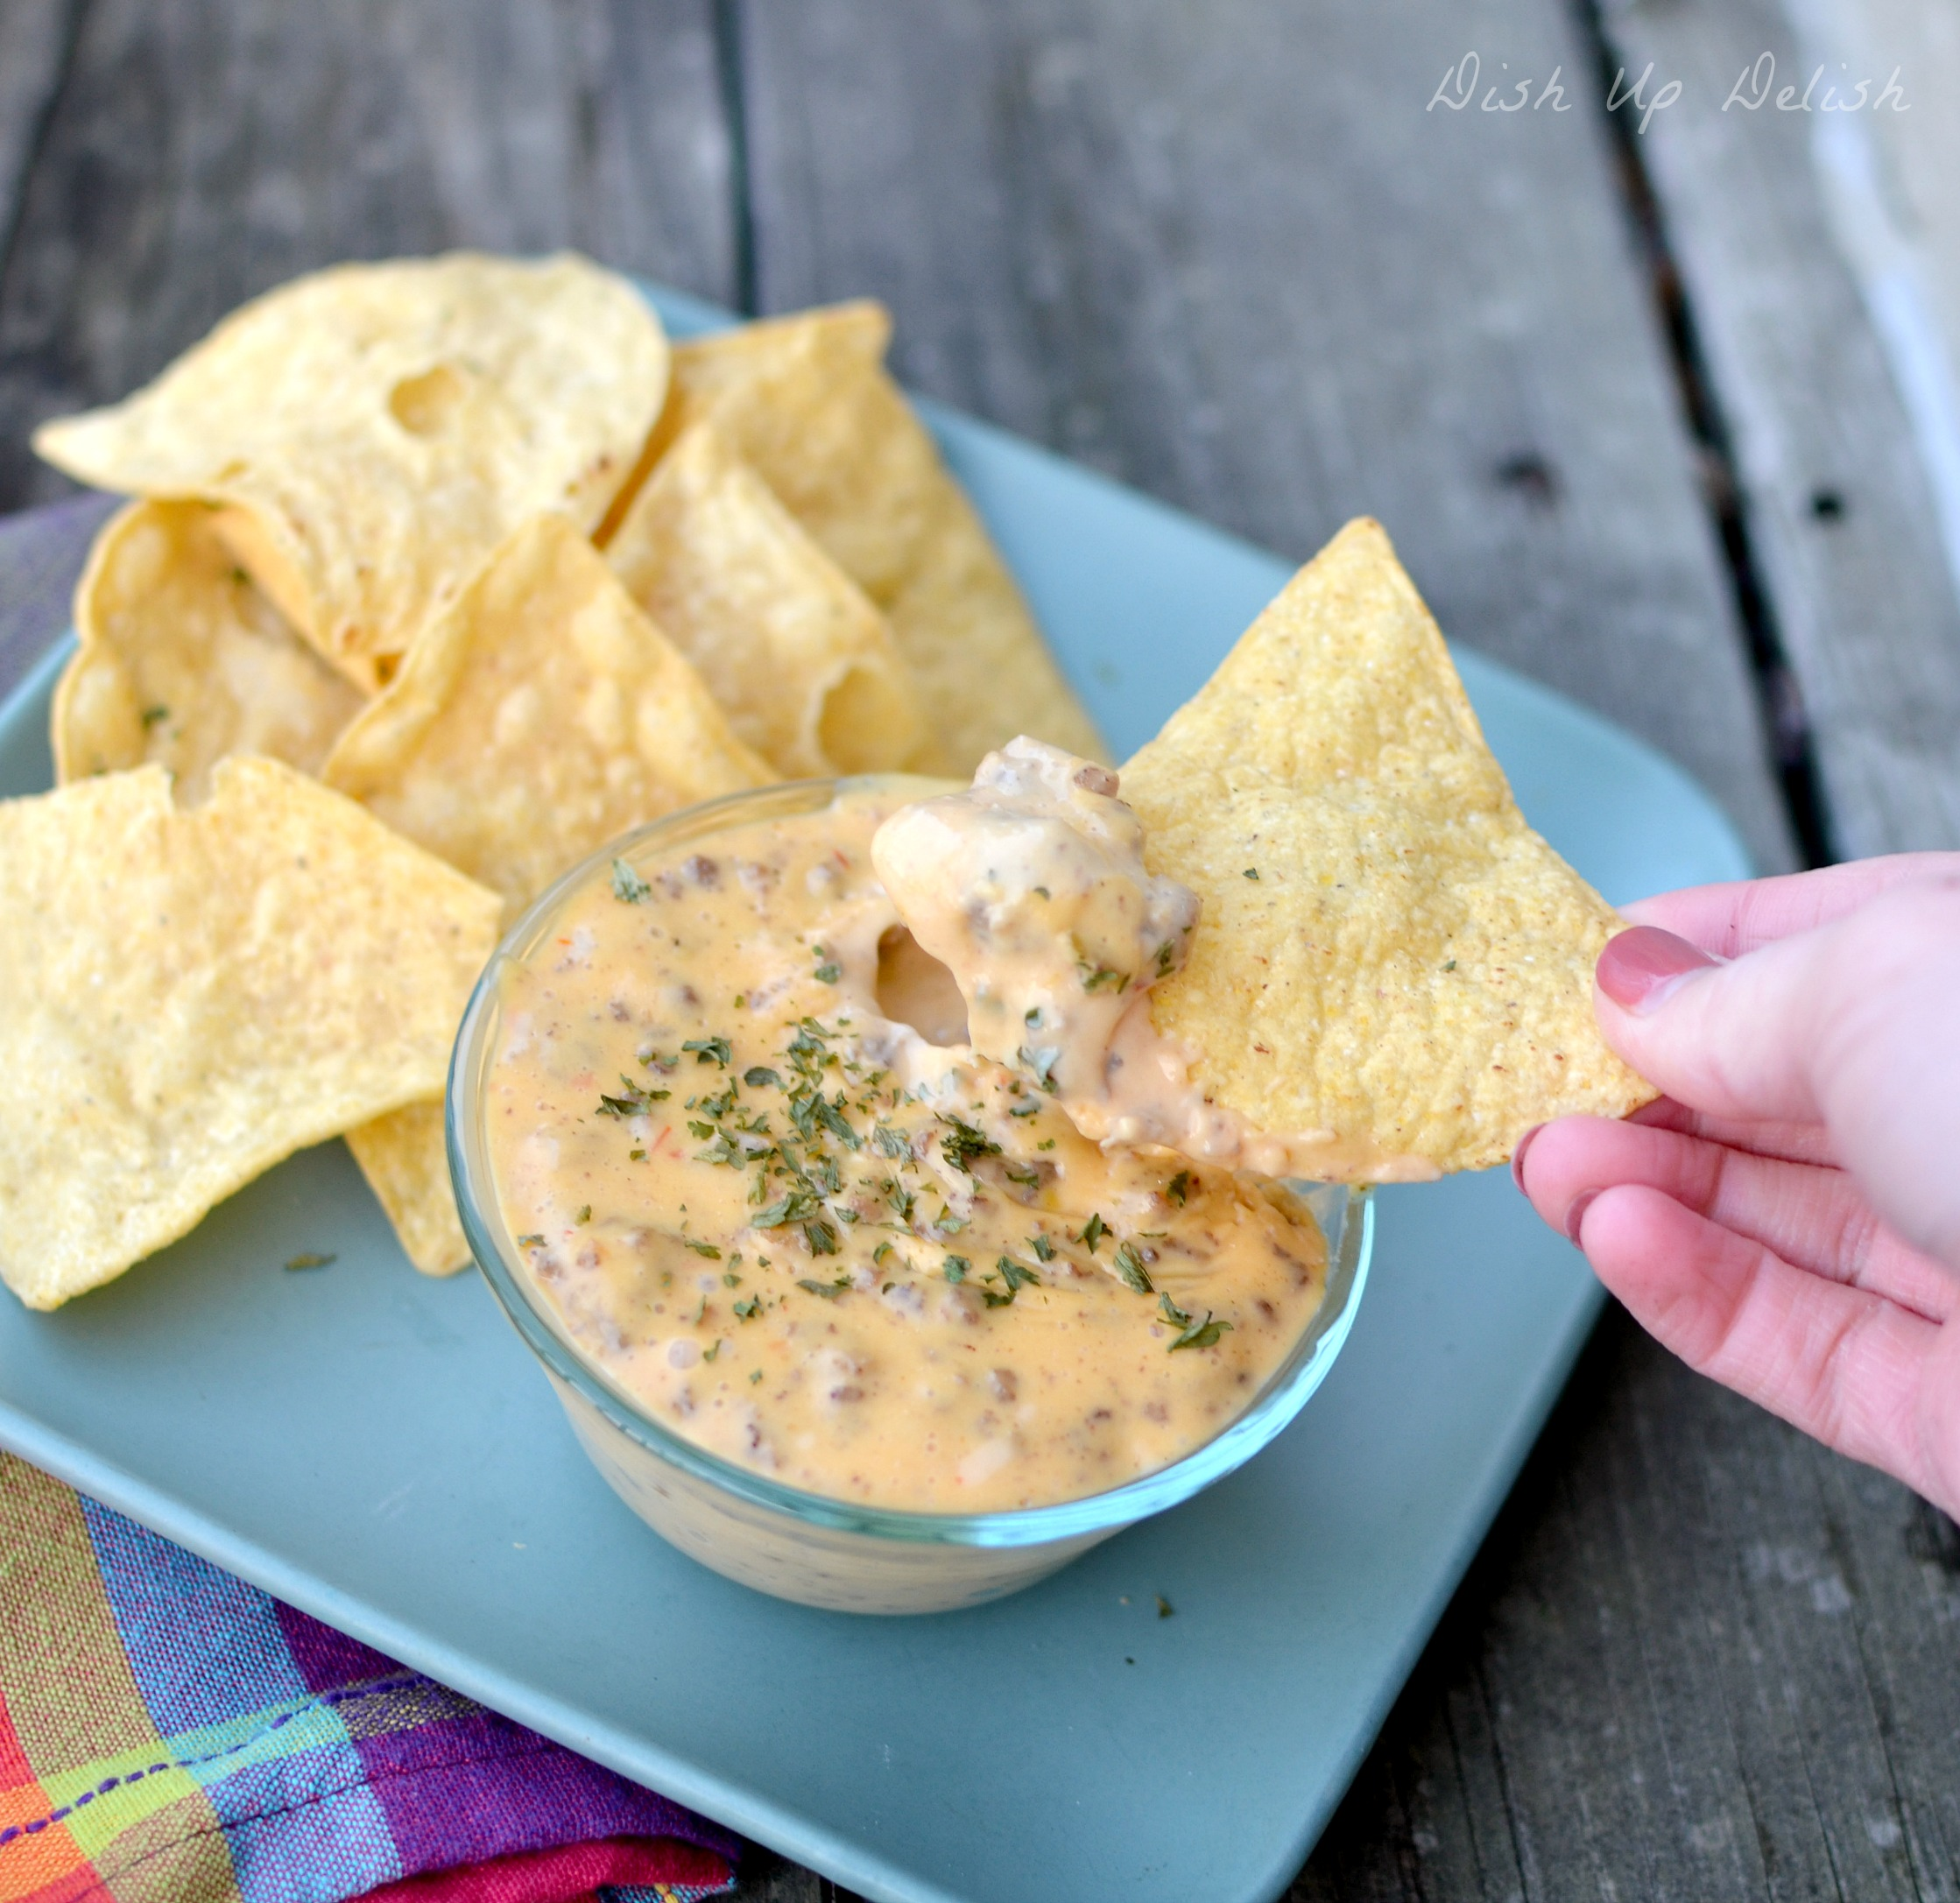 Meaty Queso from Dish Up Delish